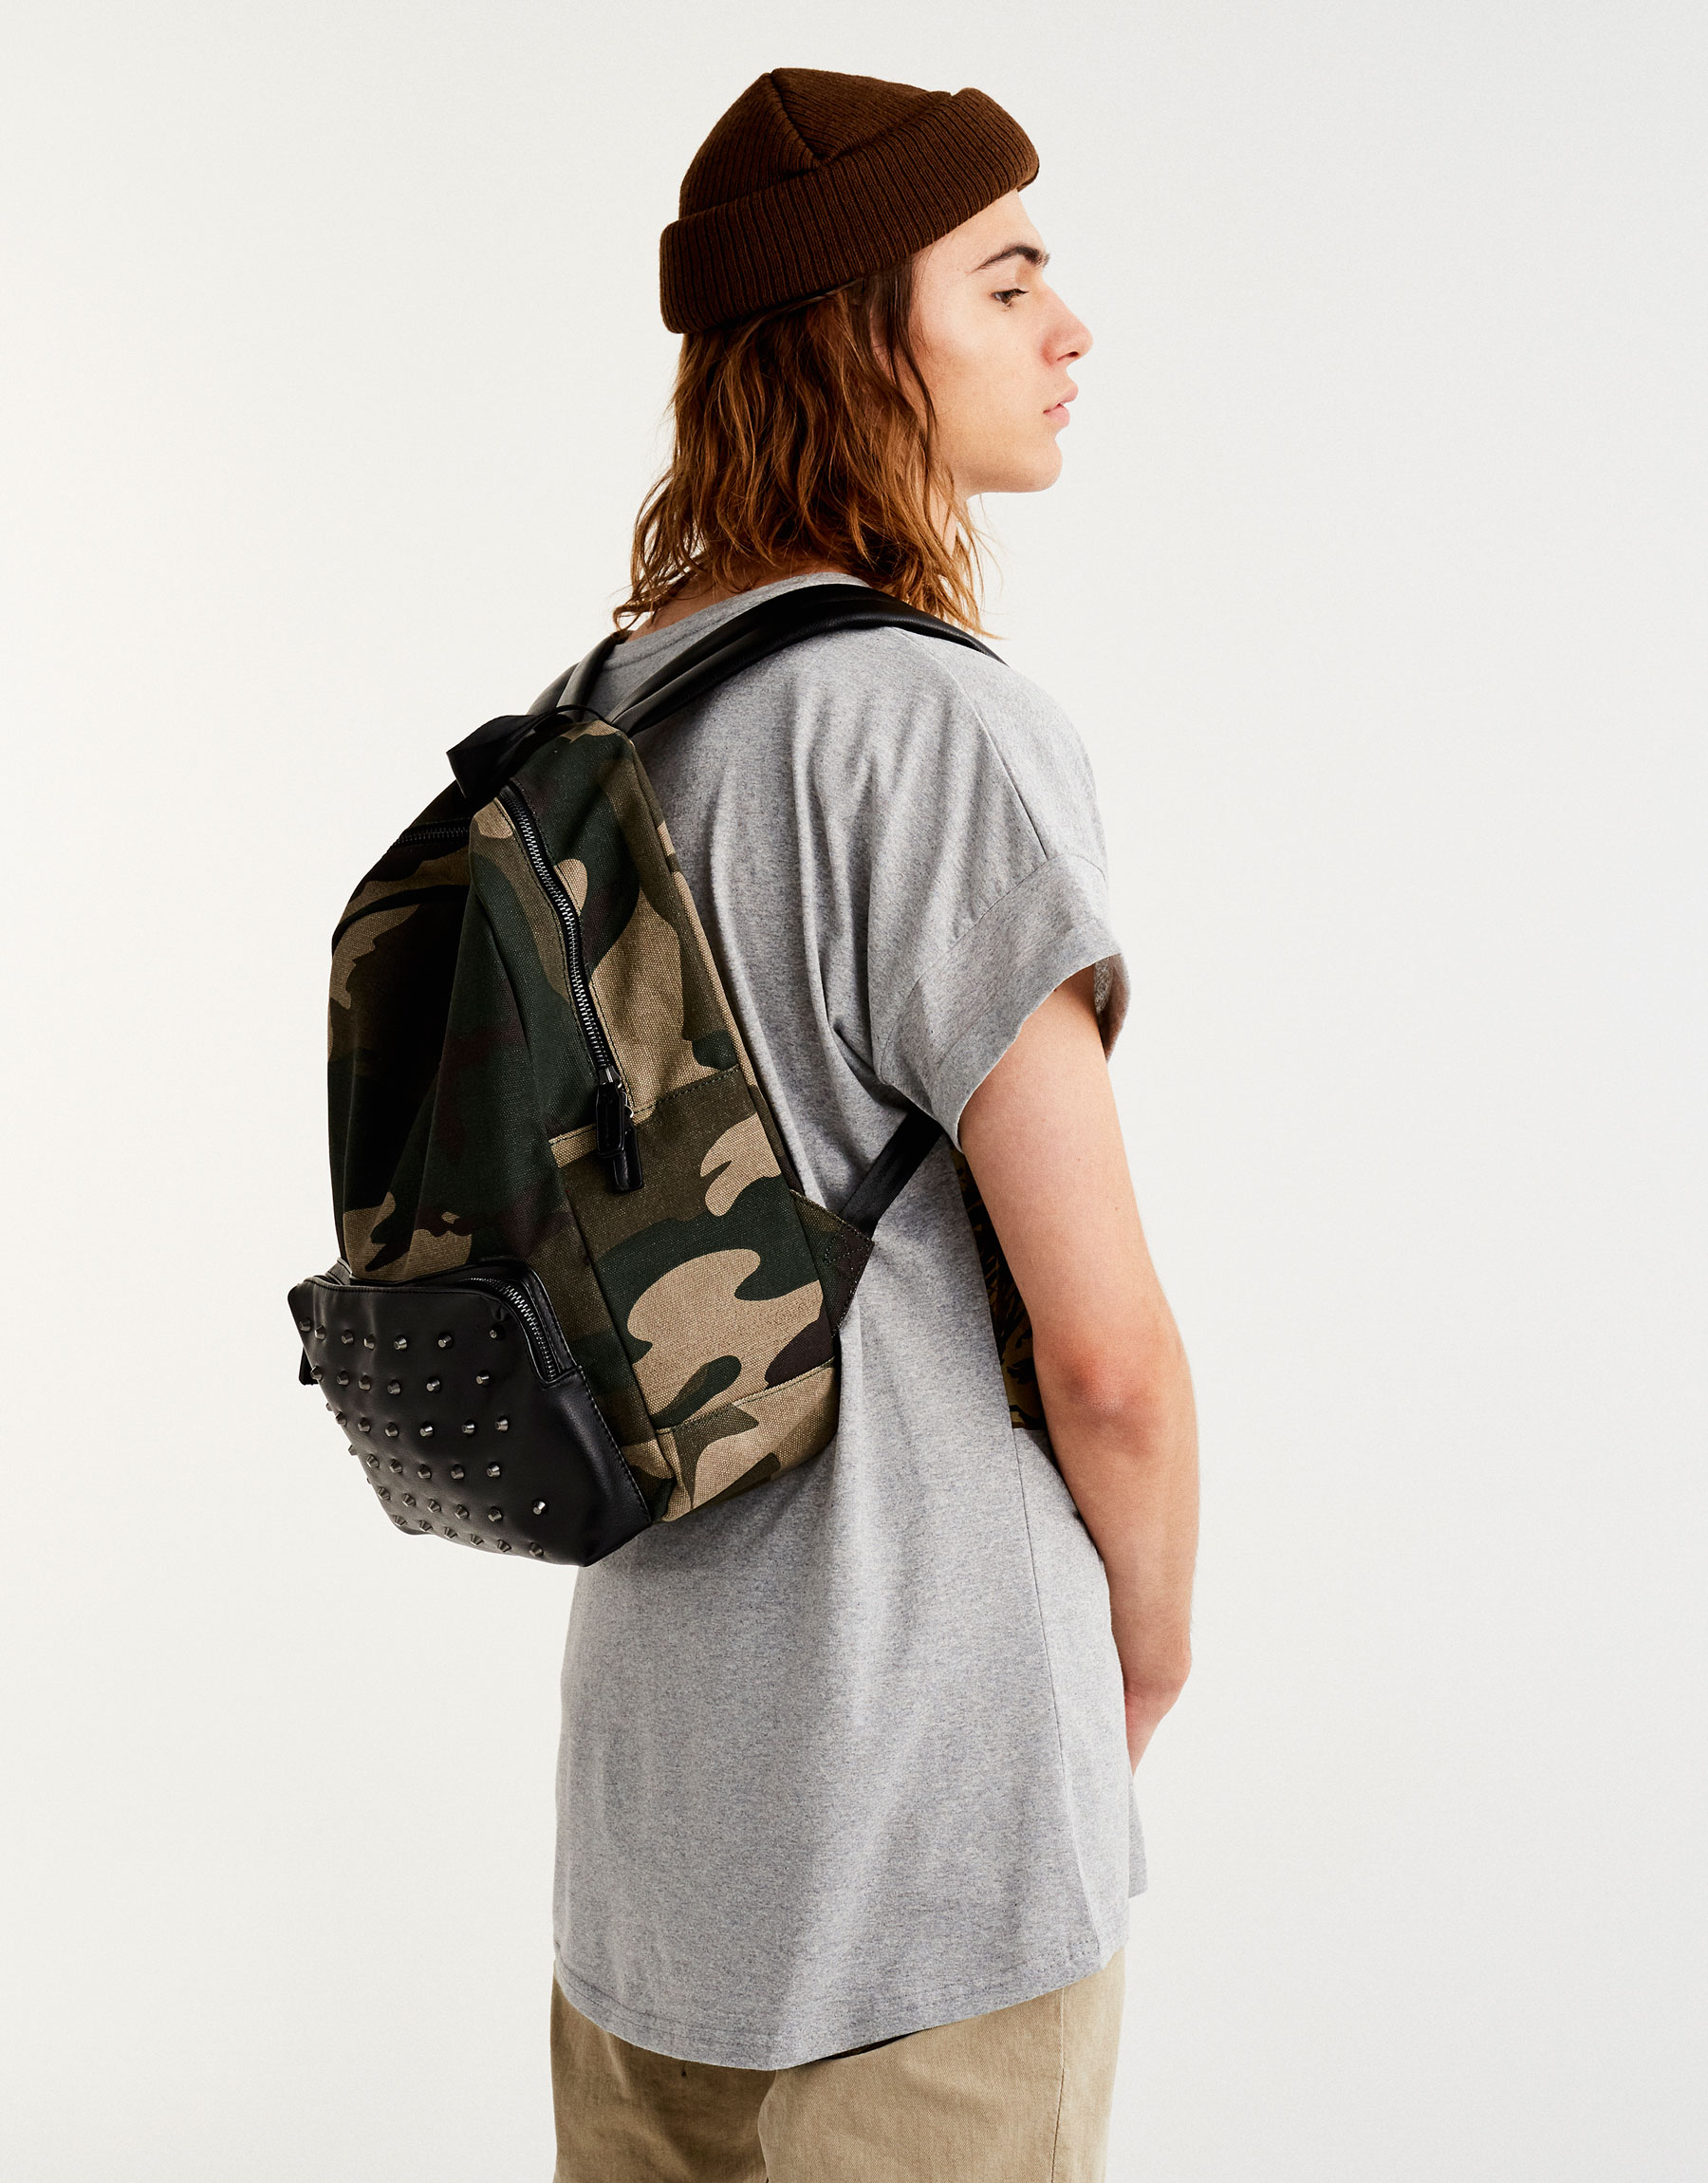 Camouflage backpack